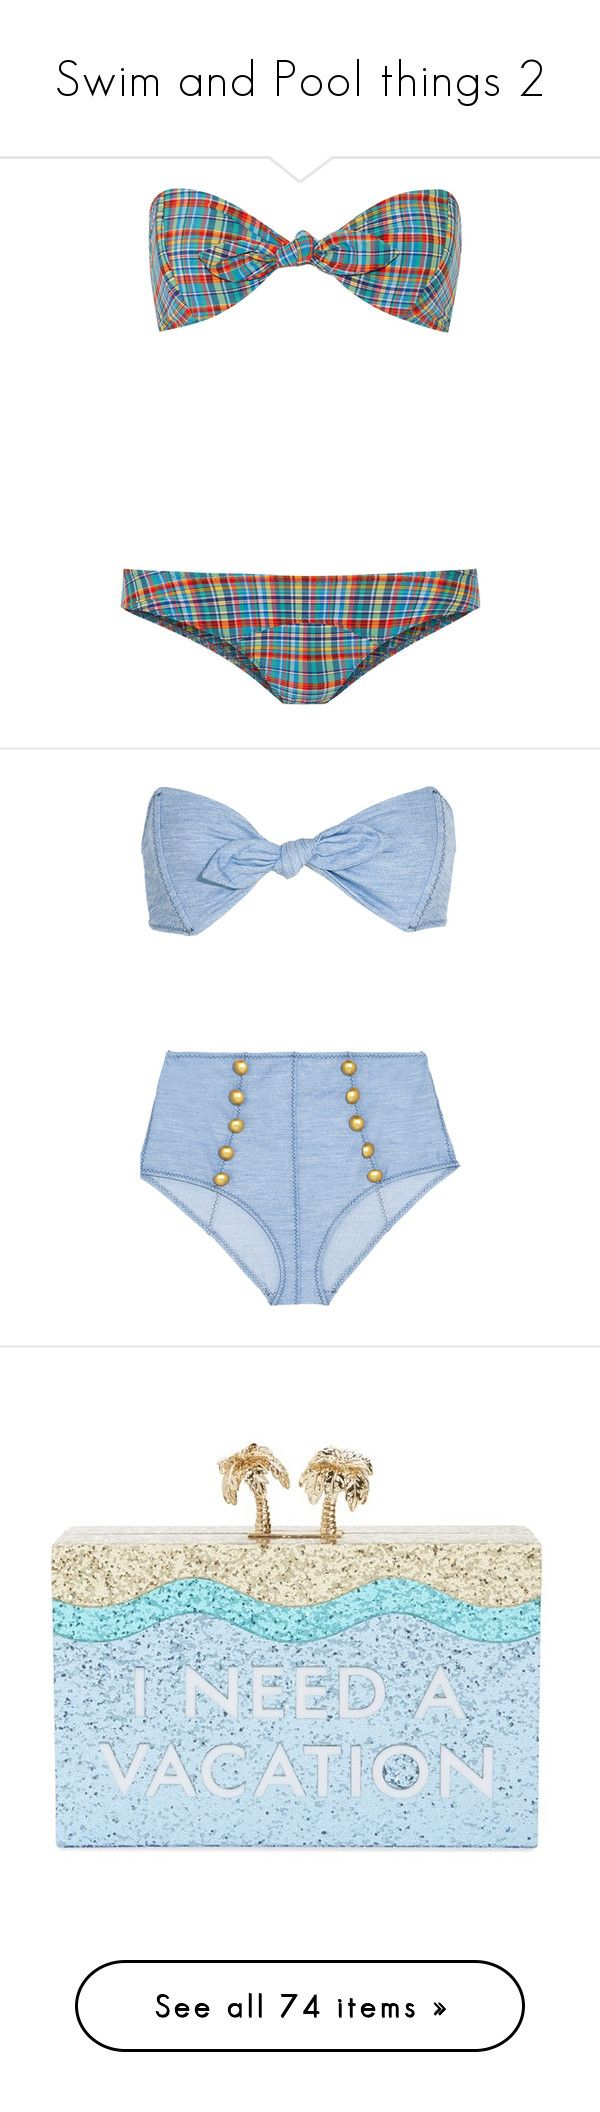 """Swim and Pool things 2"" by flirtydzines ❤ liked on Polyvore featuring swimwear, bikinis, light blue, bandeau bikini top, pinup bikini, tie-dye swimwear, bikini two piece, pinup swimwear, bikini and lisa marie fernandez"